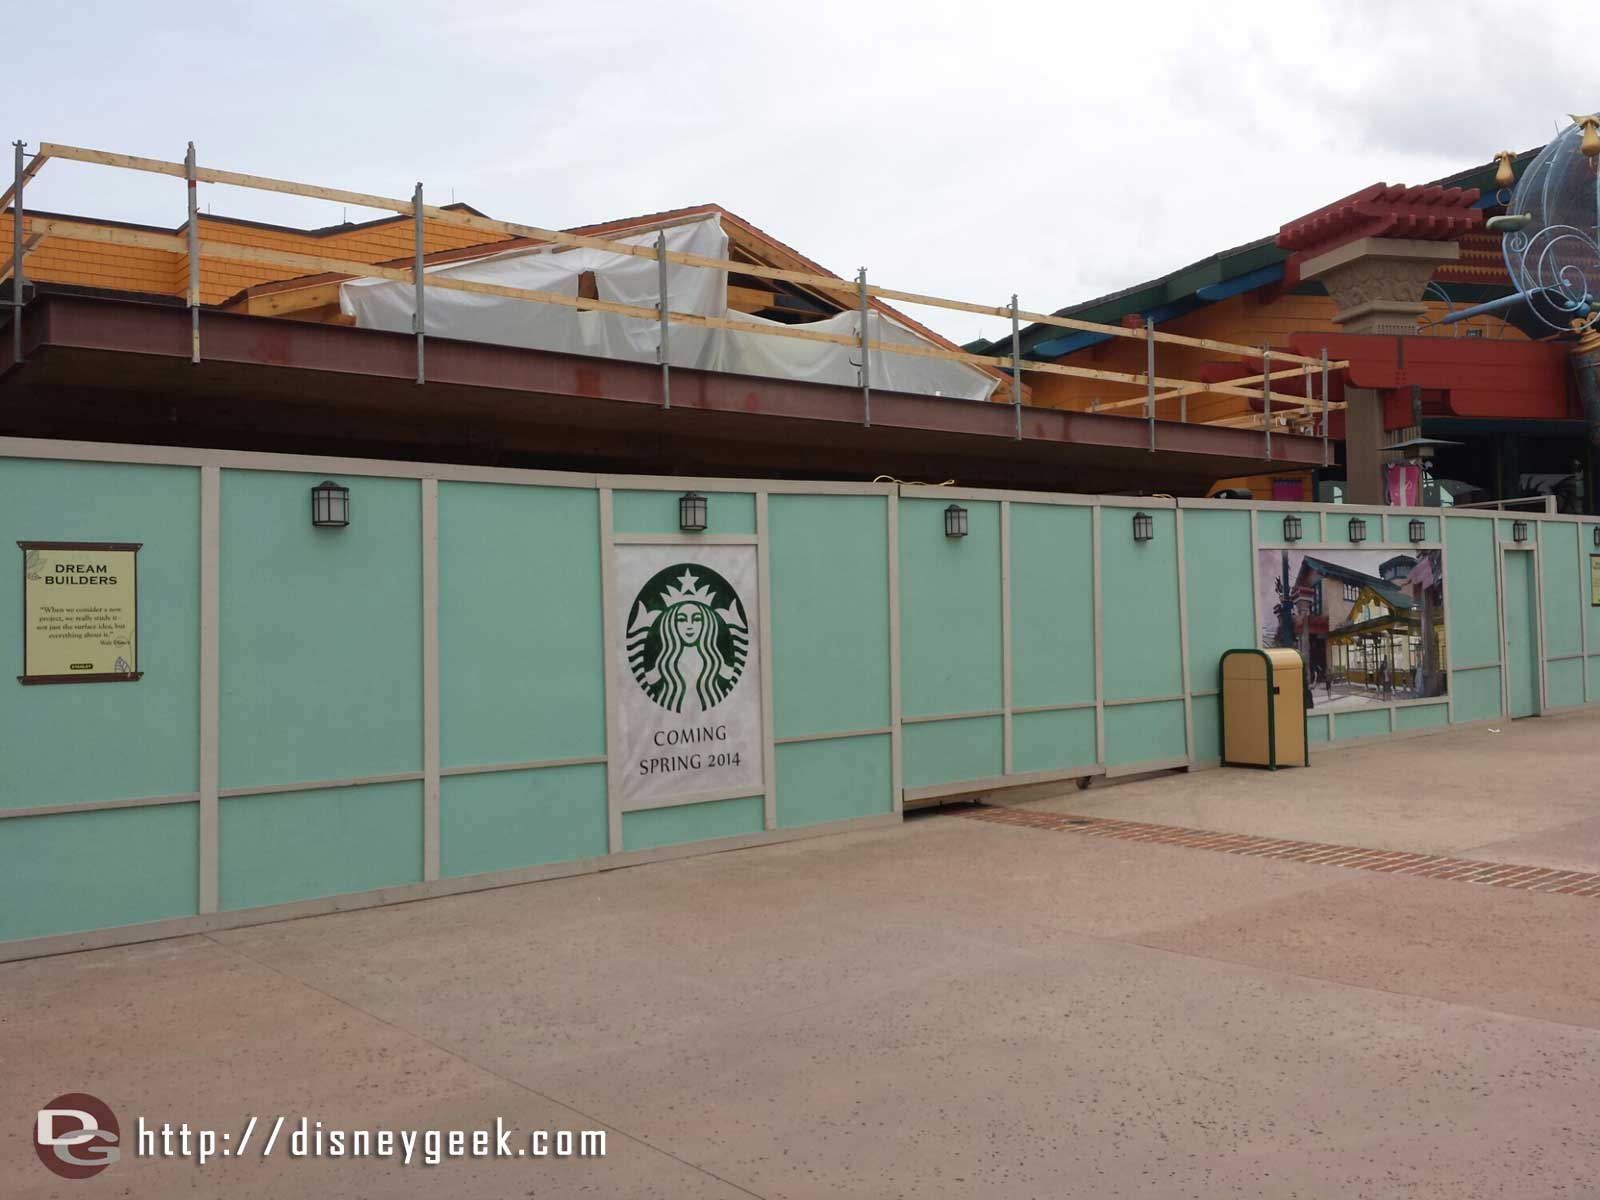 Downtown Disney Starbucks near World of Disney opens Spring 2014 according to the sign